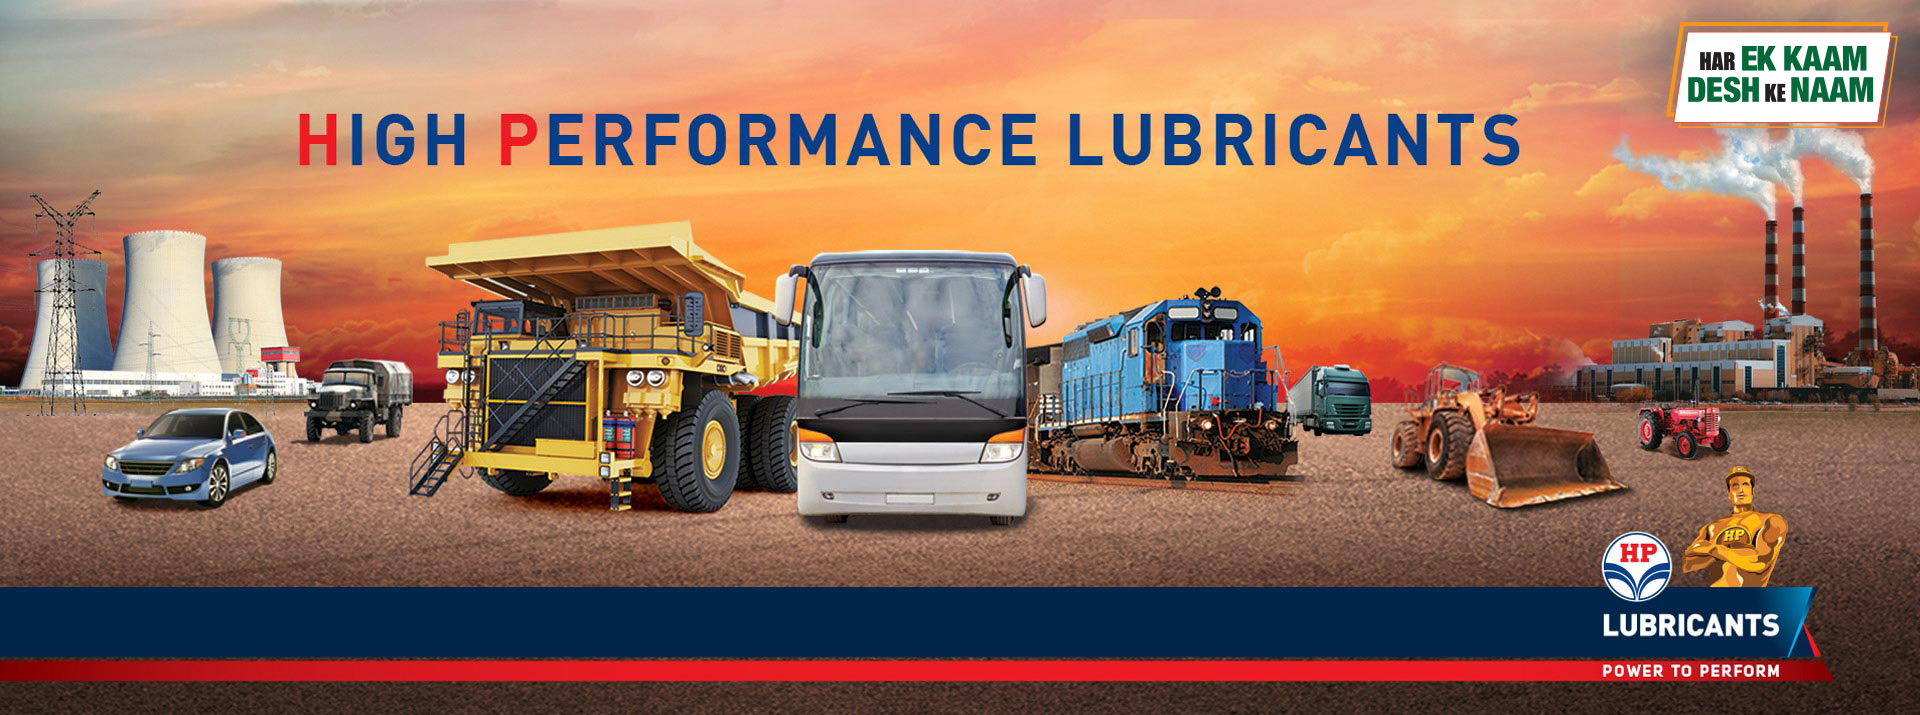 HP Lubricants - India's Largest Lube Marketer | HPCL